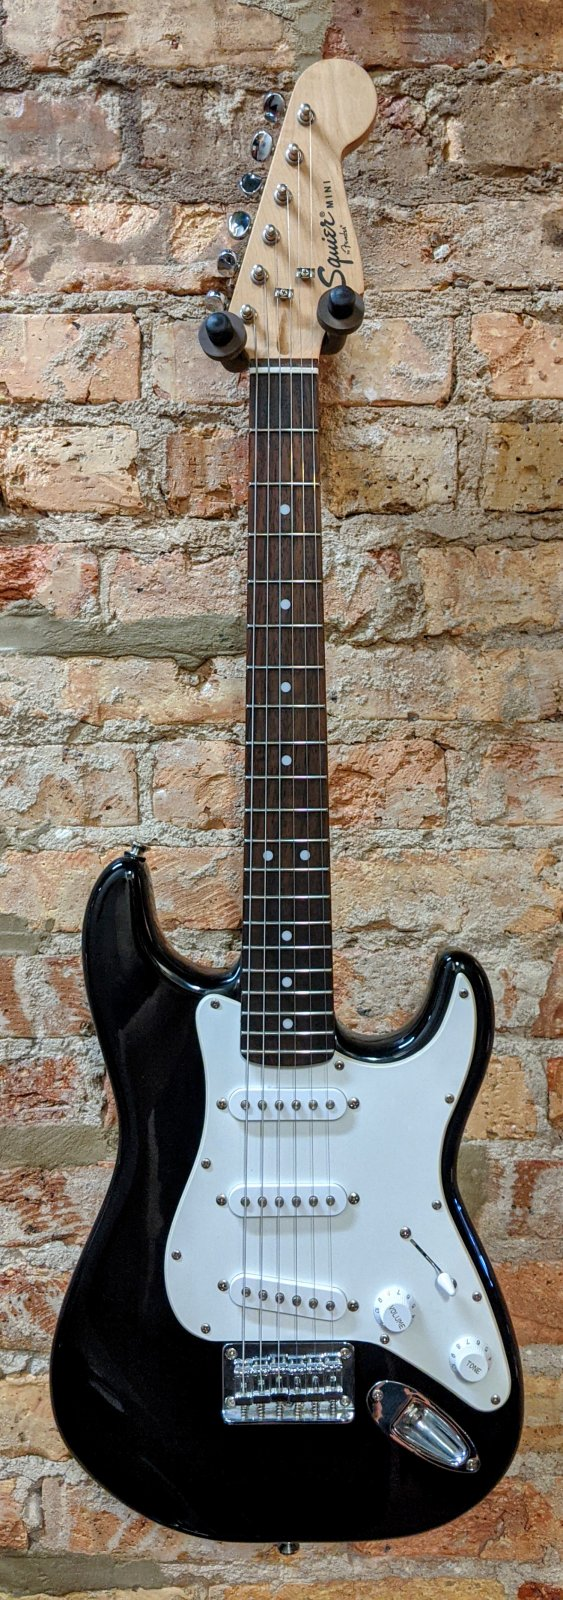 Used Squier Mini Stratocaster V1 - Black